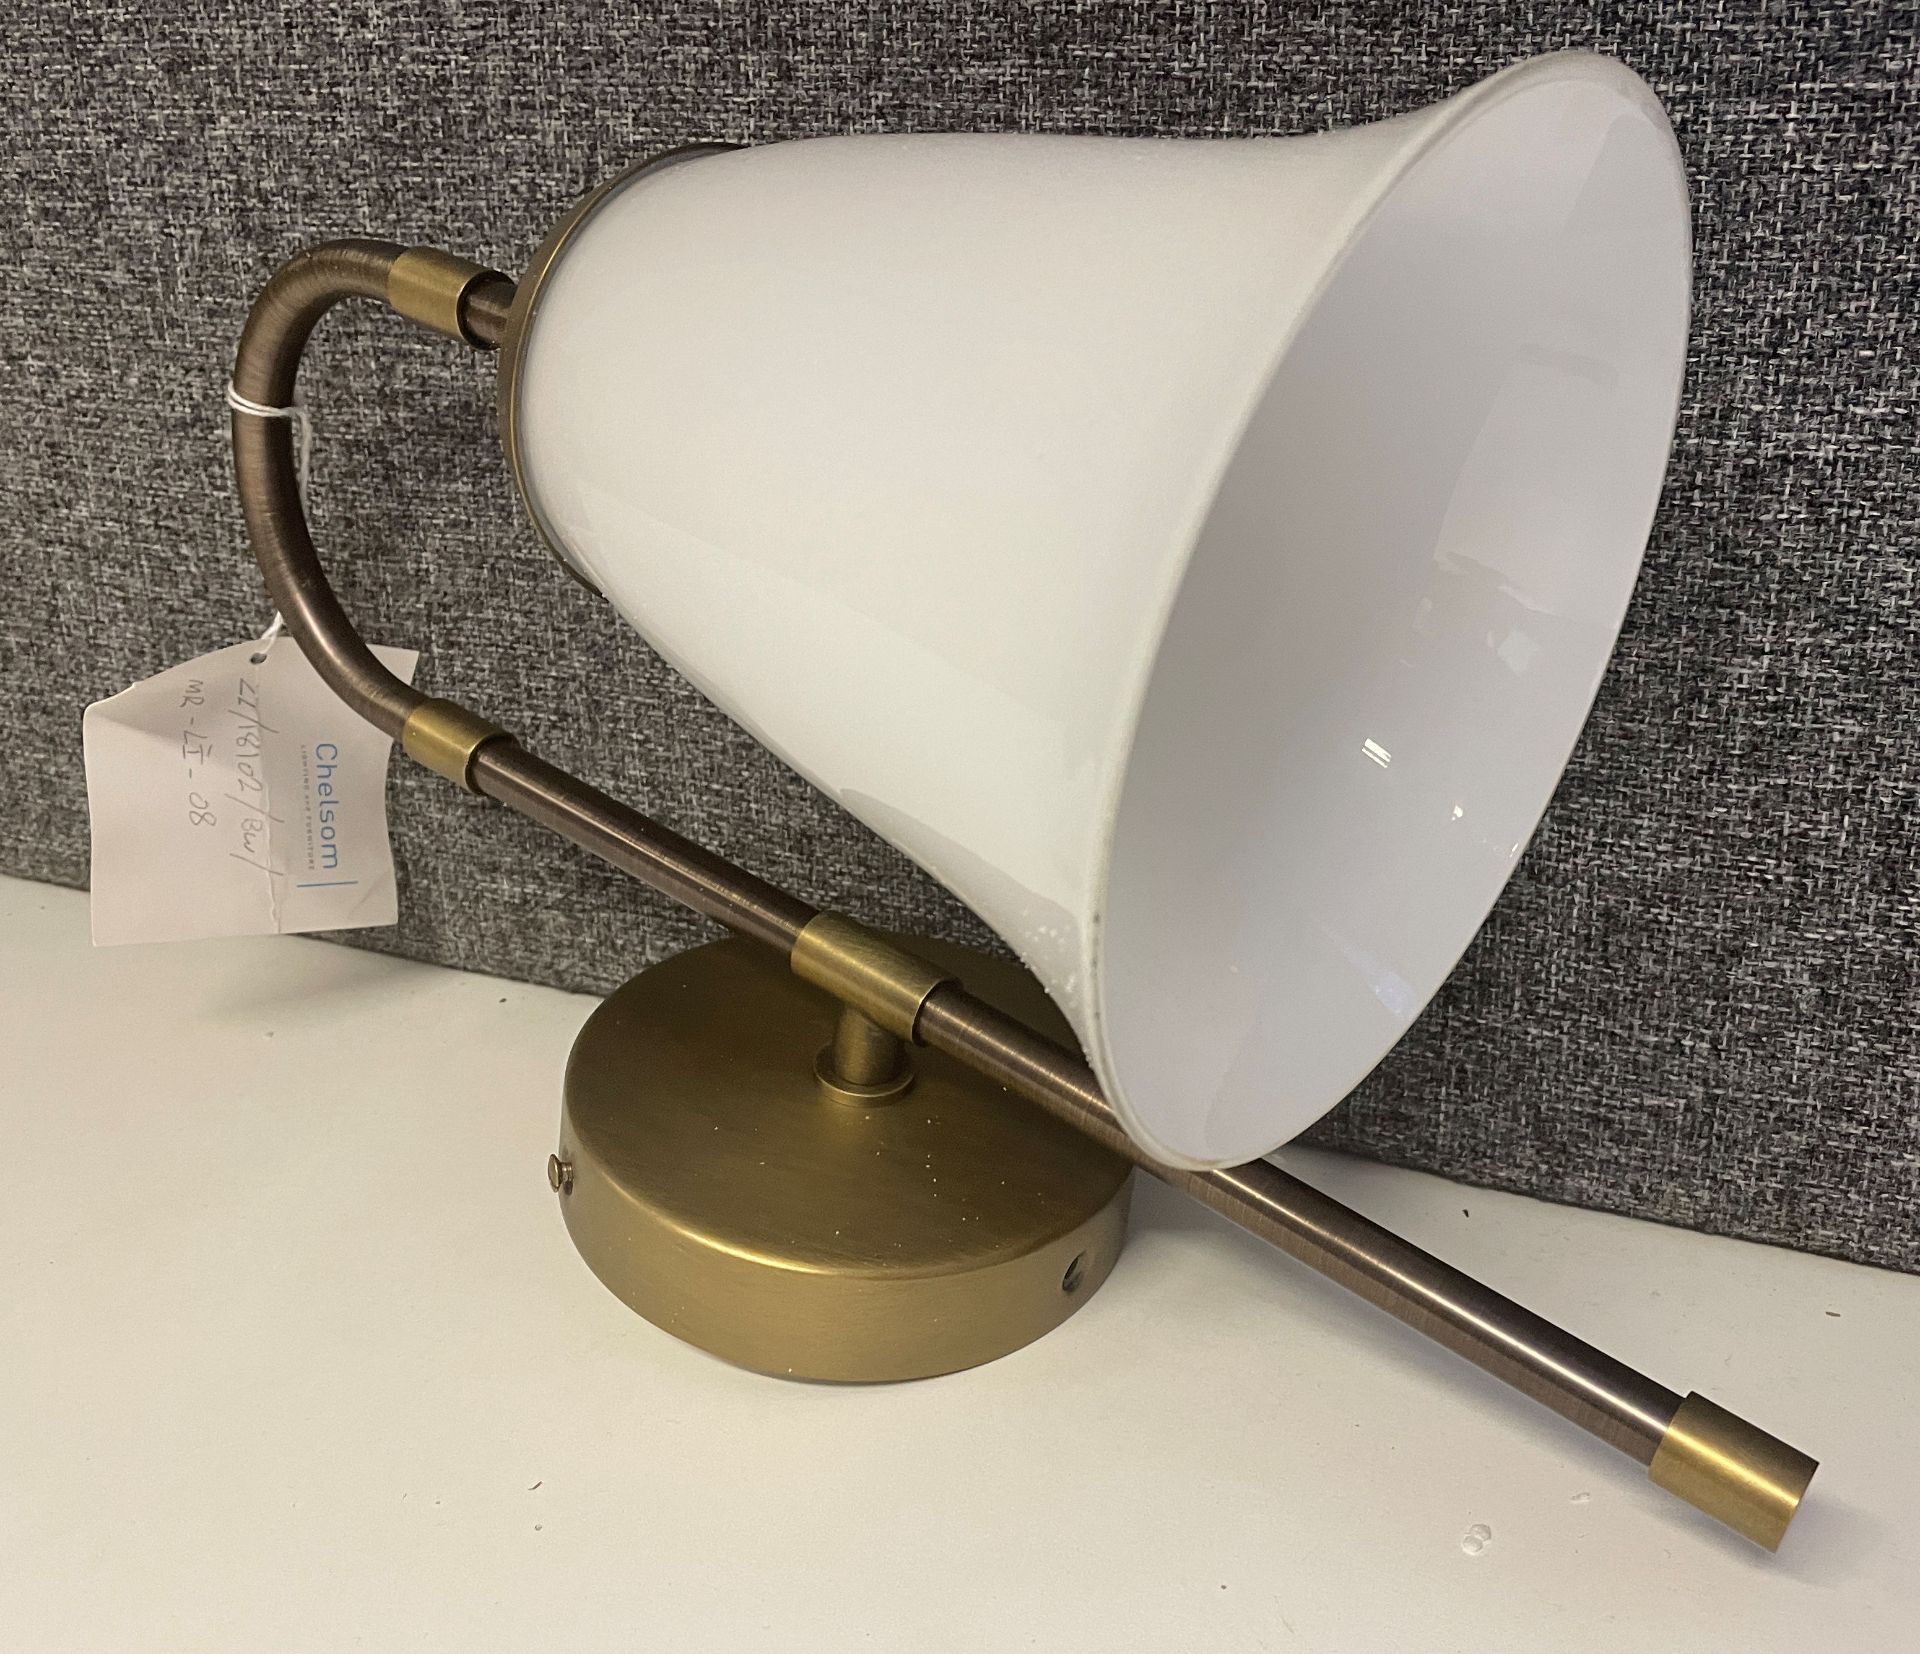 1 x Chelsom brushed brass and bronze Wall Light (height 37cm x depth 24cm) with smoked white glass